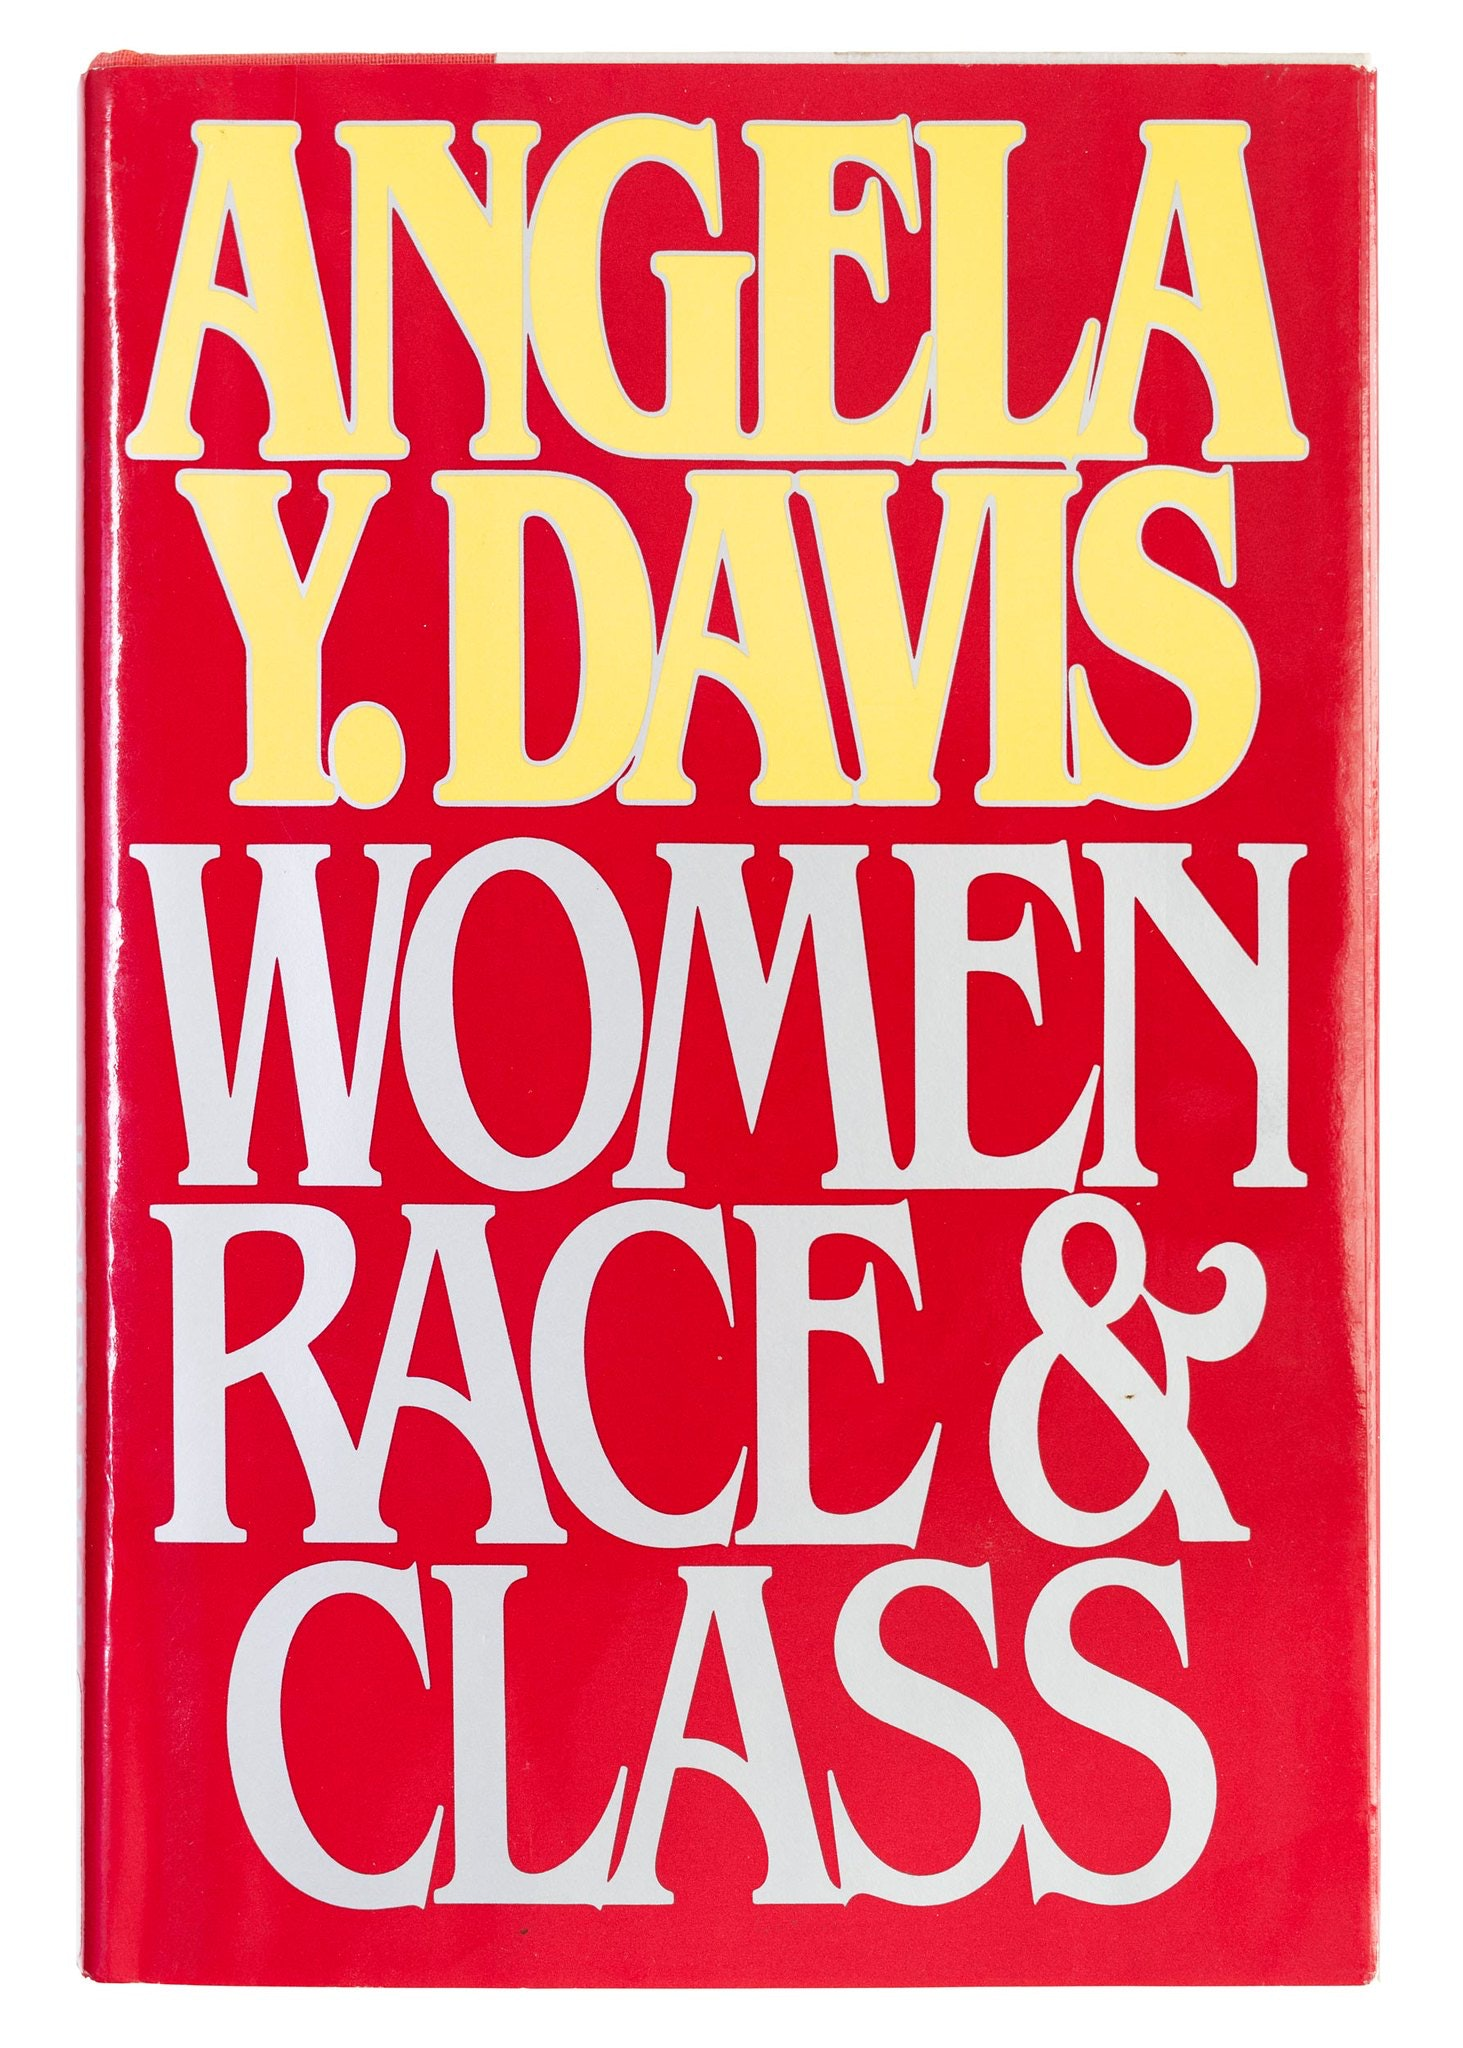 """Red book cover with """"Angela Y Davis,"""" in yellow text, and """"Women Race & Class,"""" in a light grey text."""